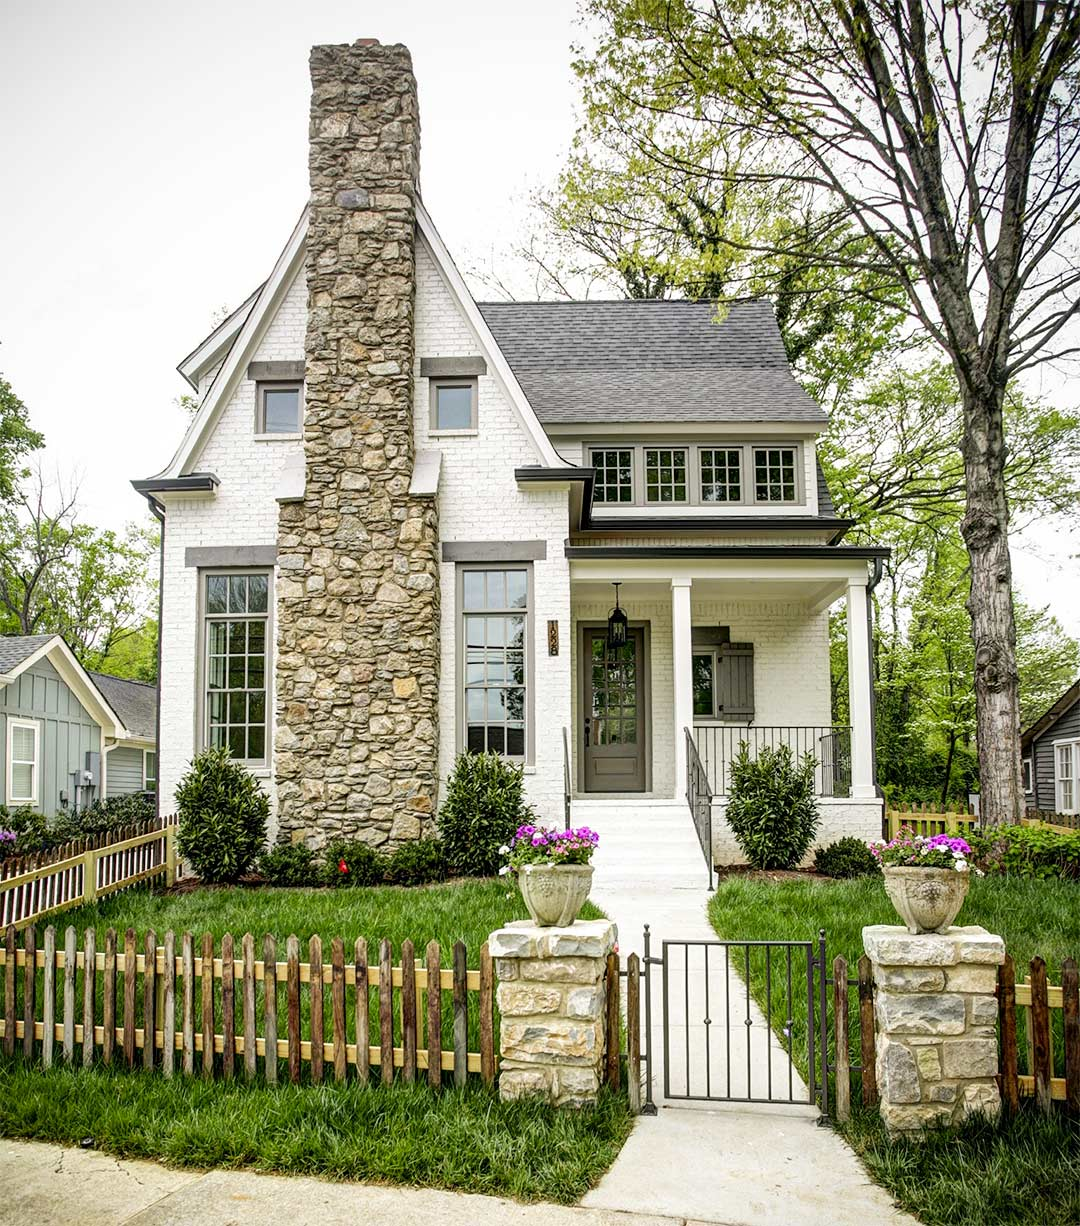 Exterior House Colors: Why We Chose Sherwin Williams White Duck For Our Exterior